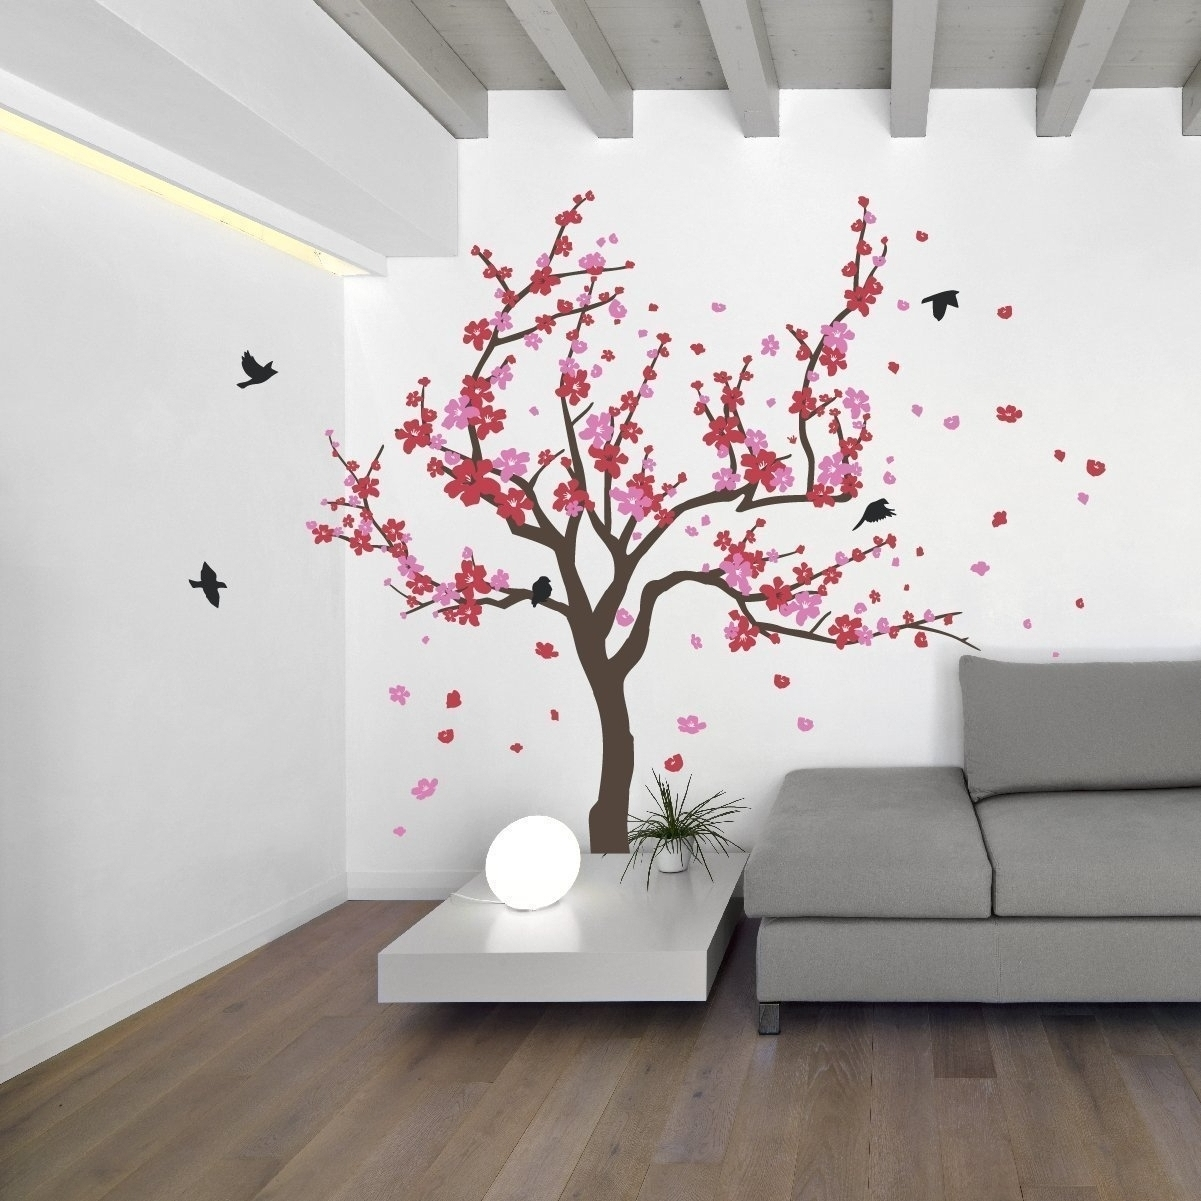 Newest Cherry Blossom Wall Art Inside Cherry Blossom Wall Art – Amthuchanoi (View 11 of 20)